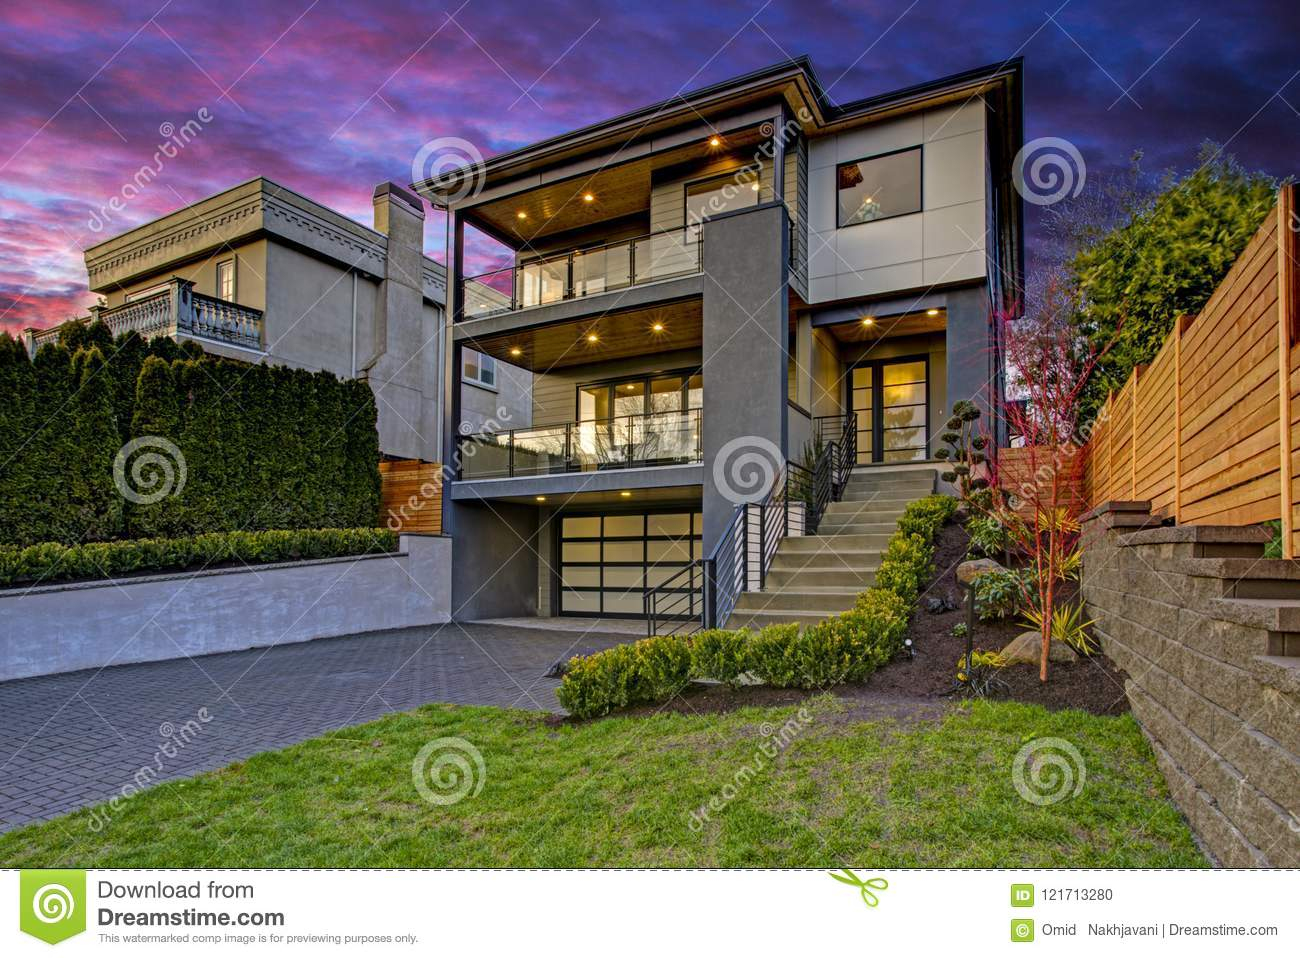 104 685 Exterior Luxury Modern Photos Free Royalty Free Stock Photos From Dreamstime